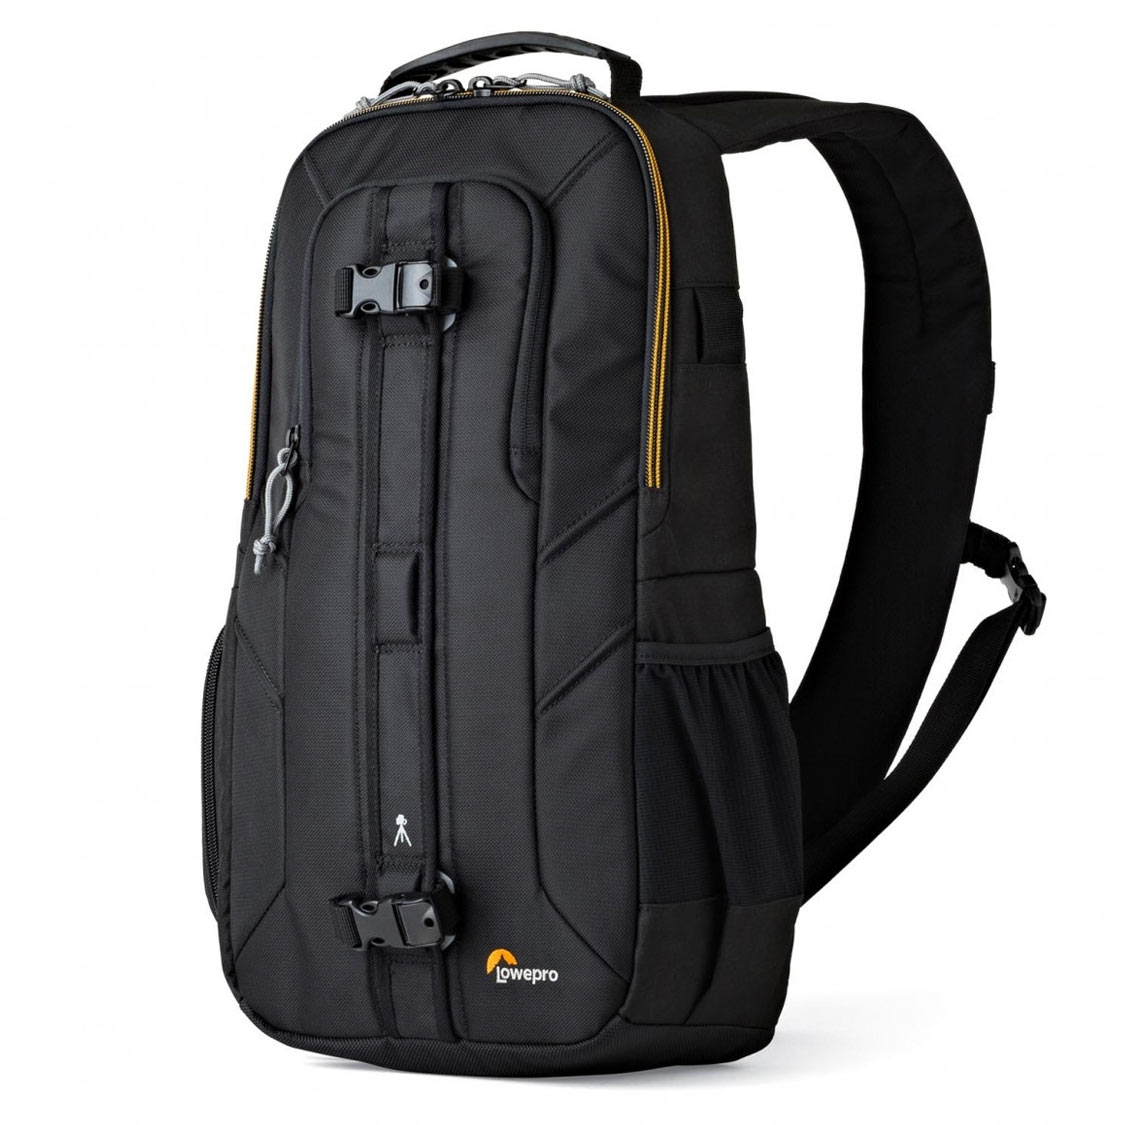 Lowepro Slingshot Edge 250 AW Sling Bag